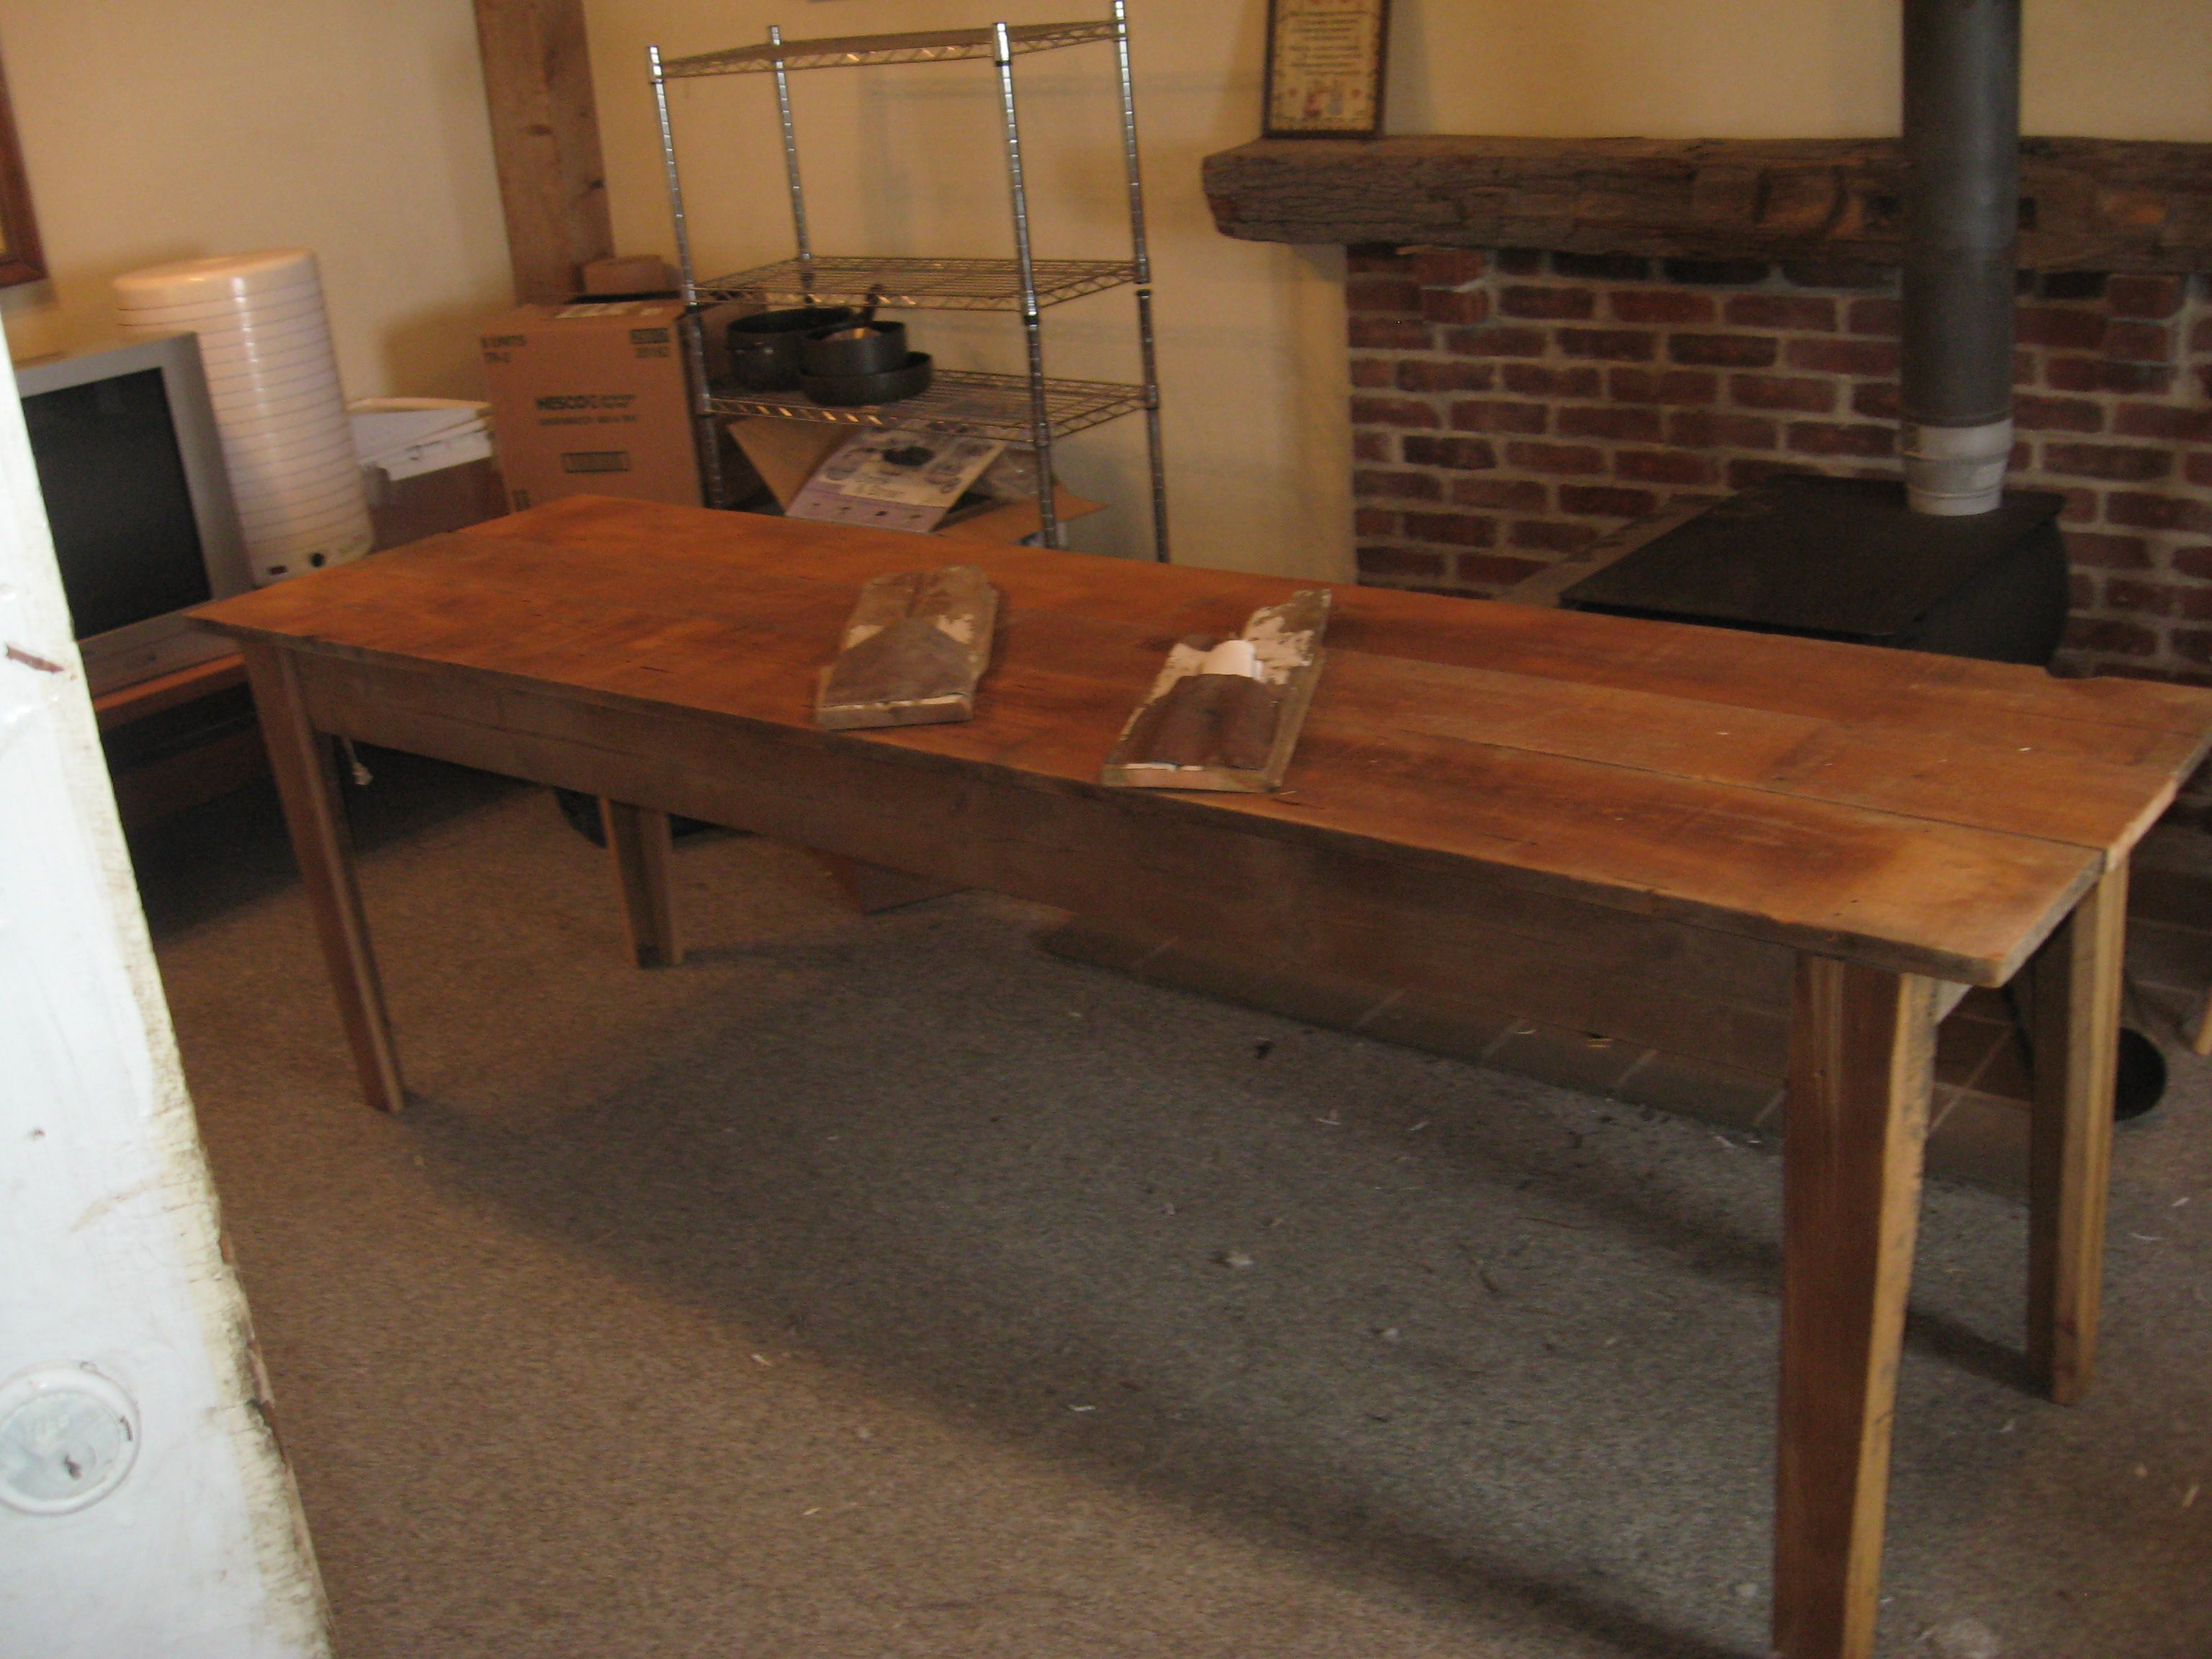 Harvest Table As Narrow Kitchen Island (8 Ft By 28 Inch Unfinished)My  Husband Needs To Build This For Me!